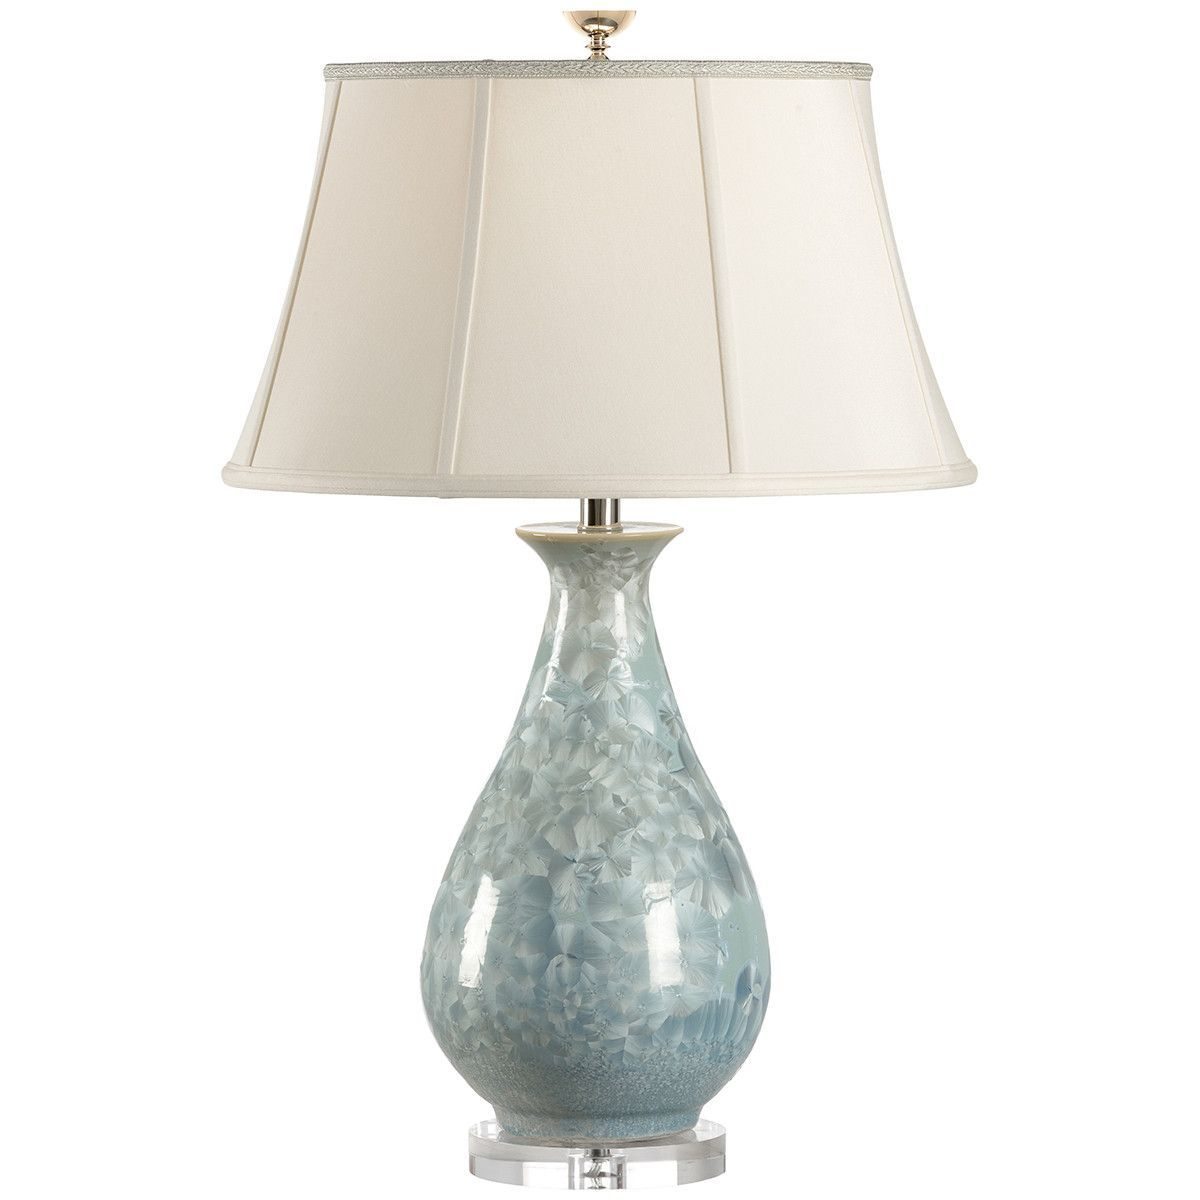 Chelsea house bamberg light turquoise table lamp turquoise table chelsea house bamberg light turquoise table lamp geotapseo Images